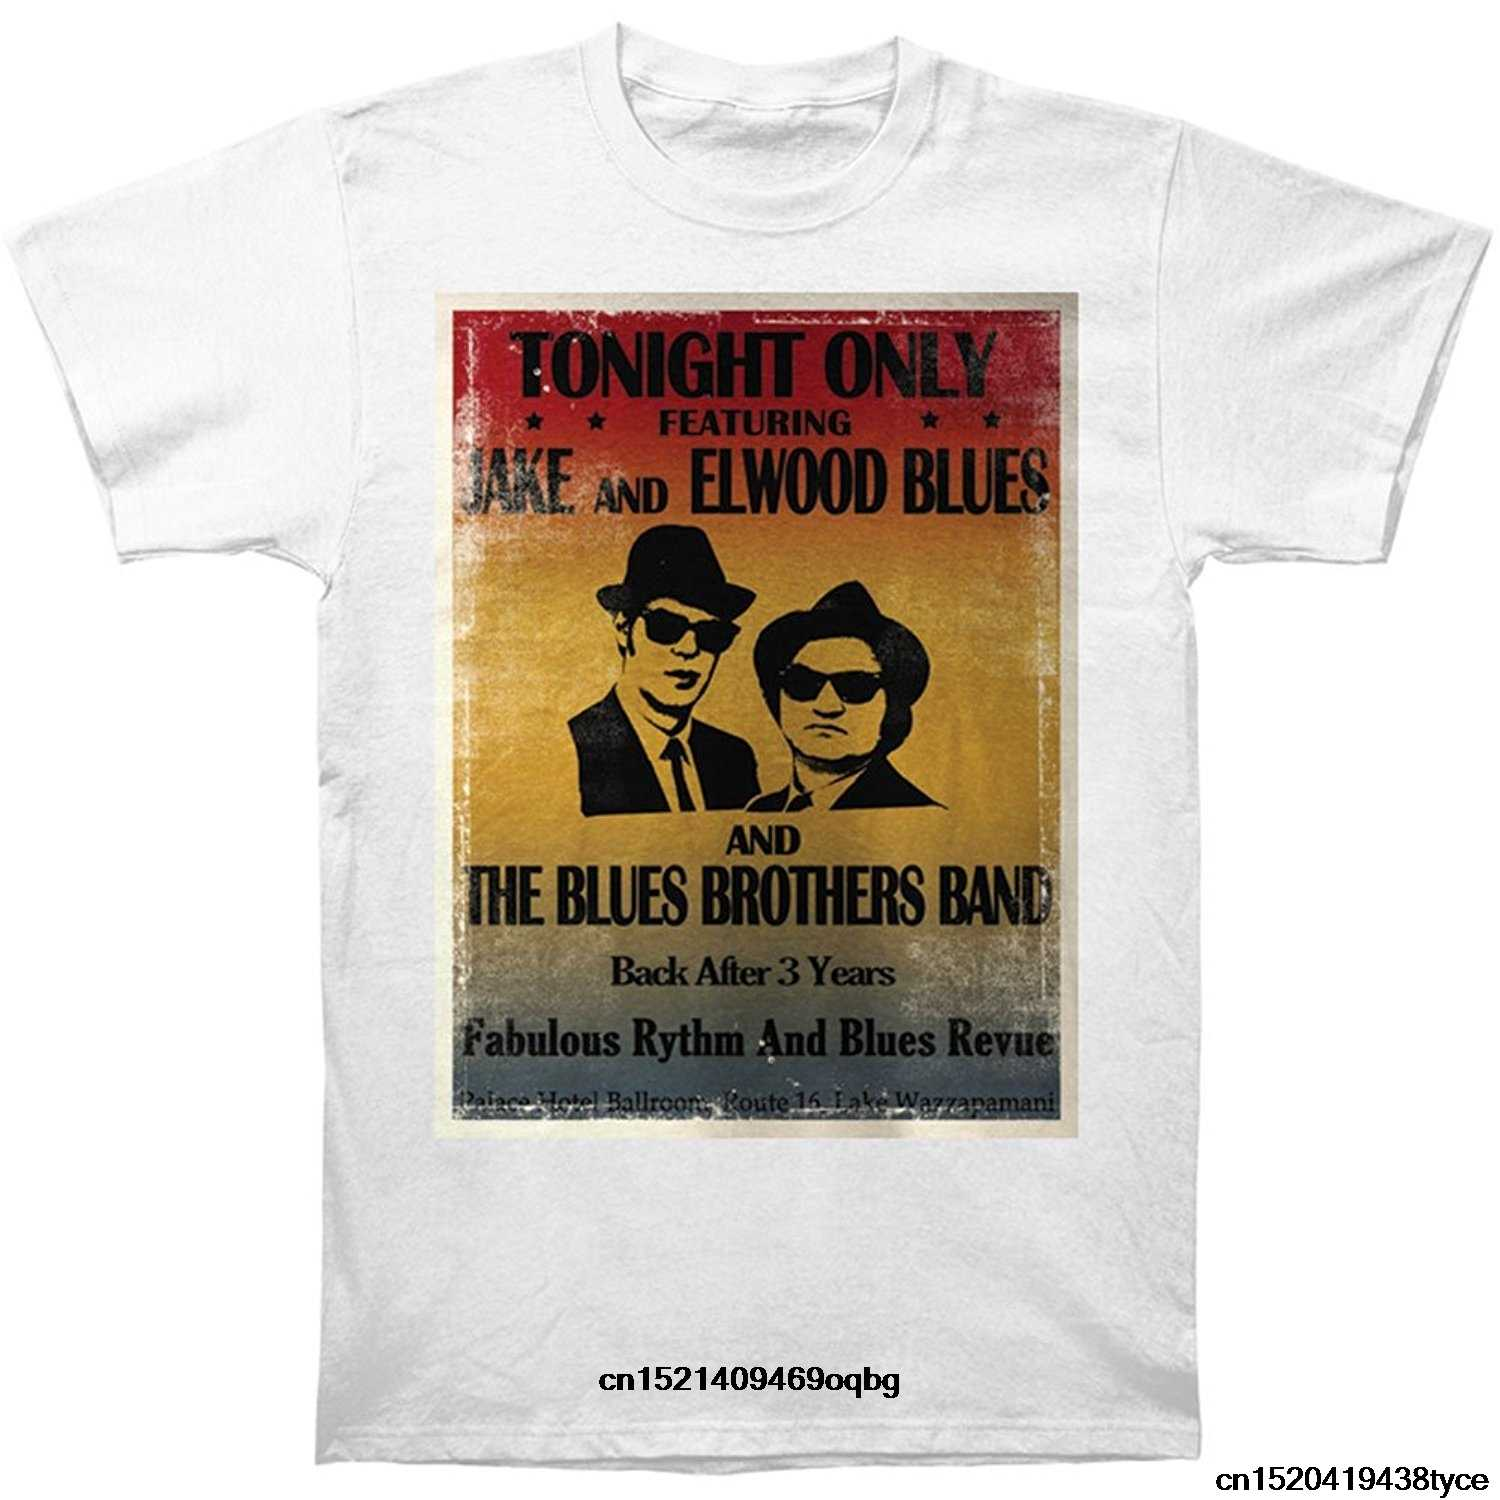 d46c8bfeed97 Brand 2018 New T Shirt Man Cotton Blues Brothers Movie Tonight Only Adult T- Shirt